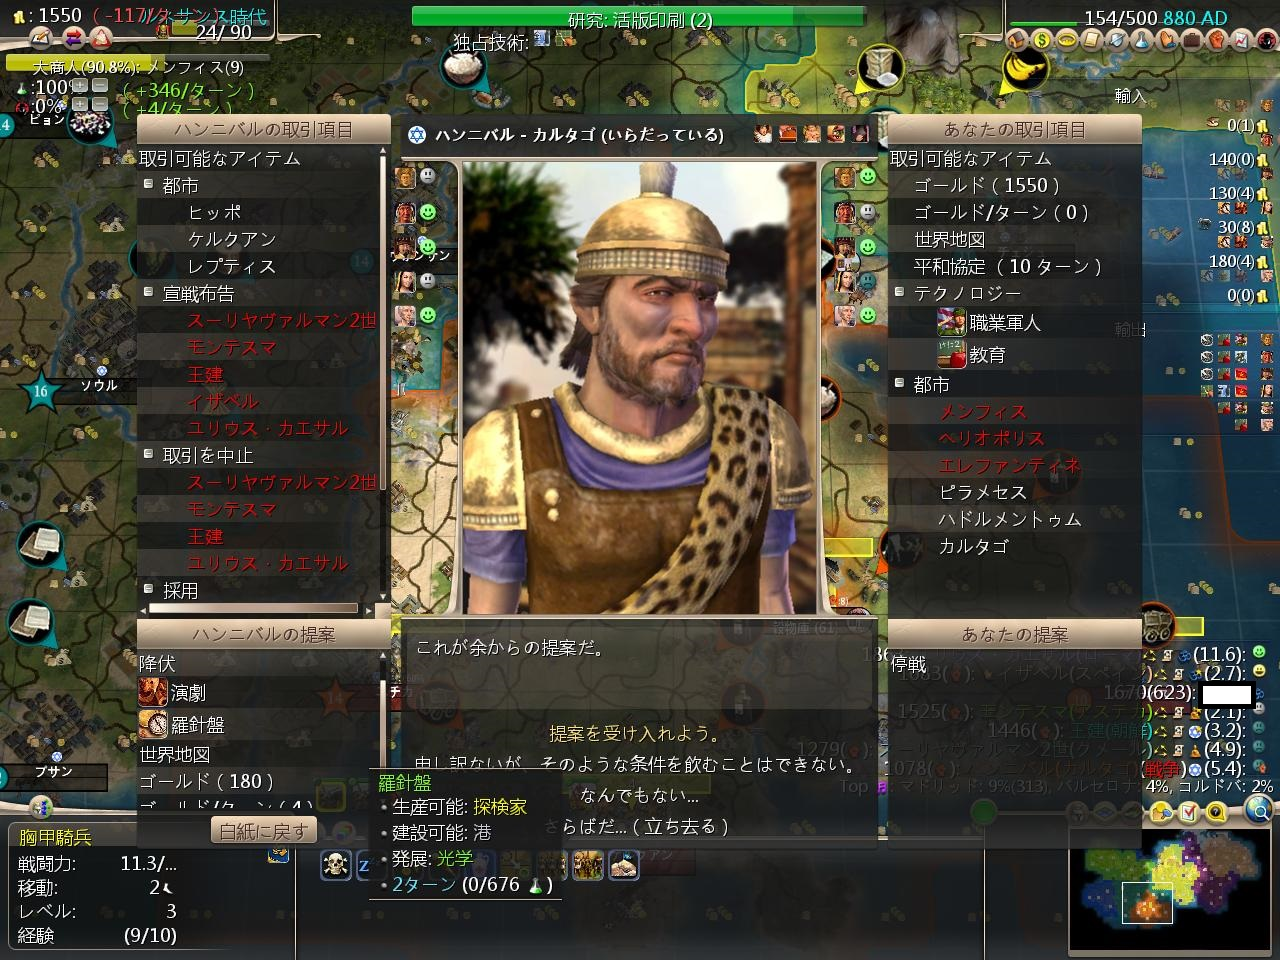 Civ4ScreenShot2210.JPG